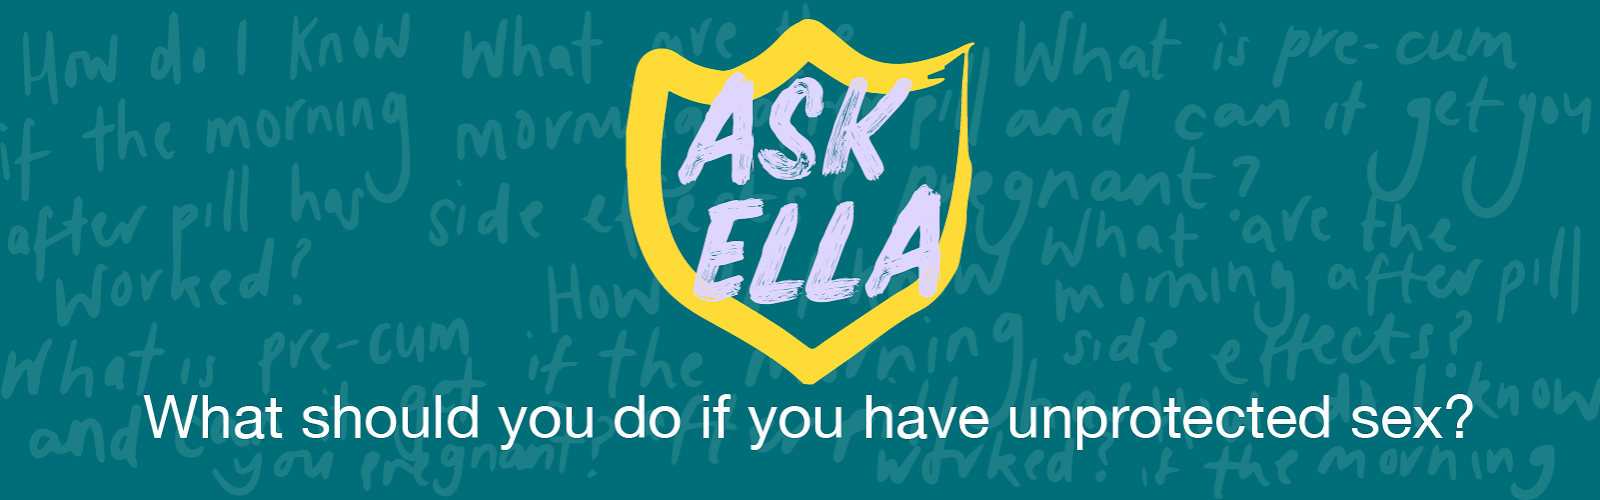 #AskElla_02_Blog_ What should you do if you have unprotected sex-.png